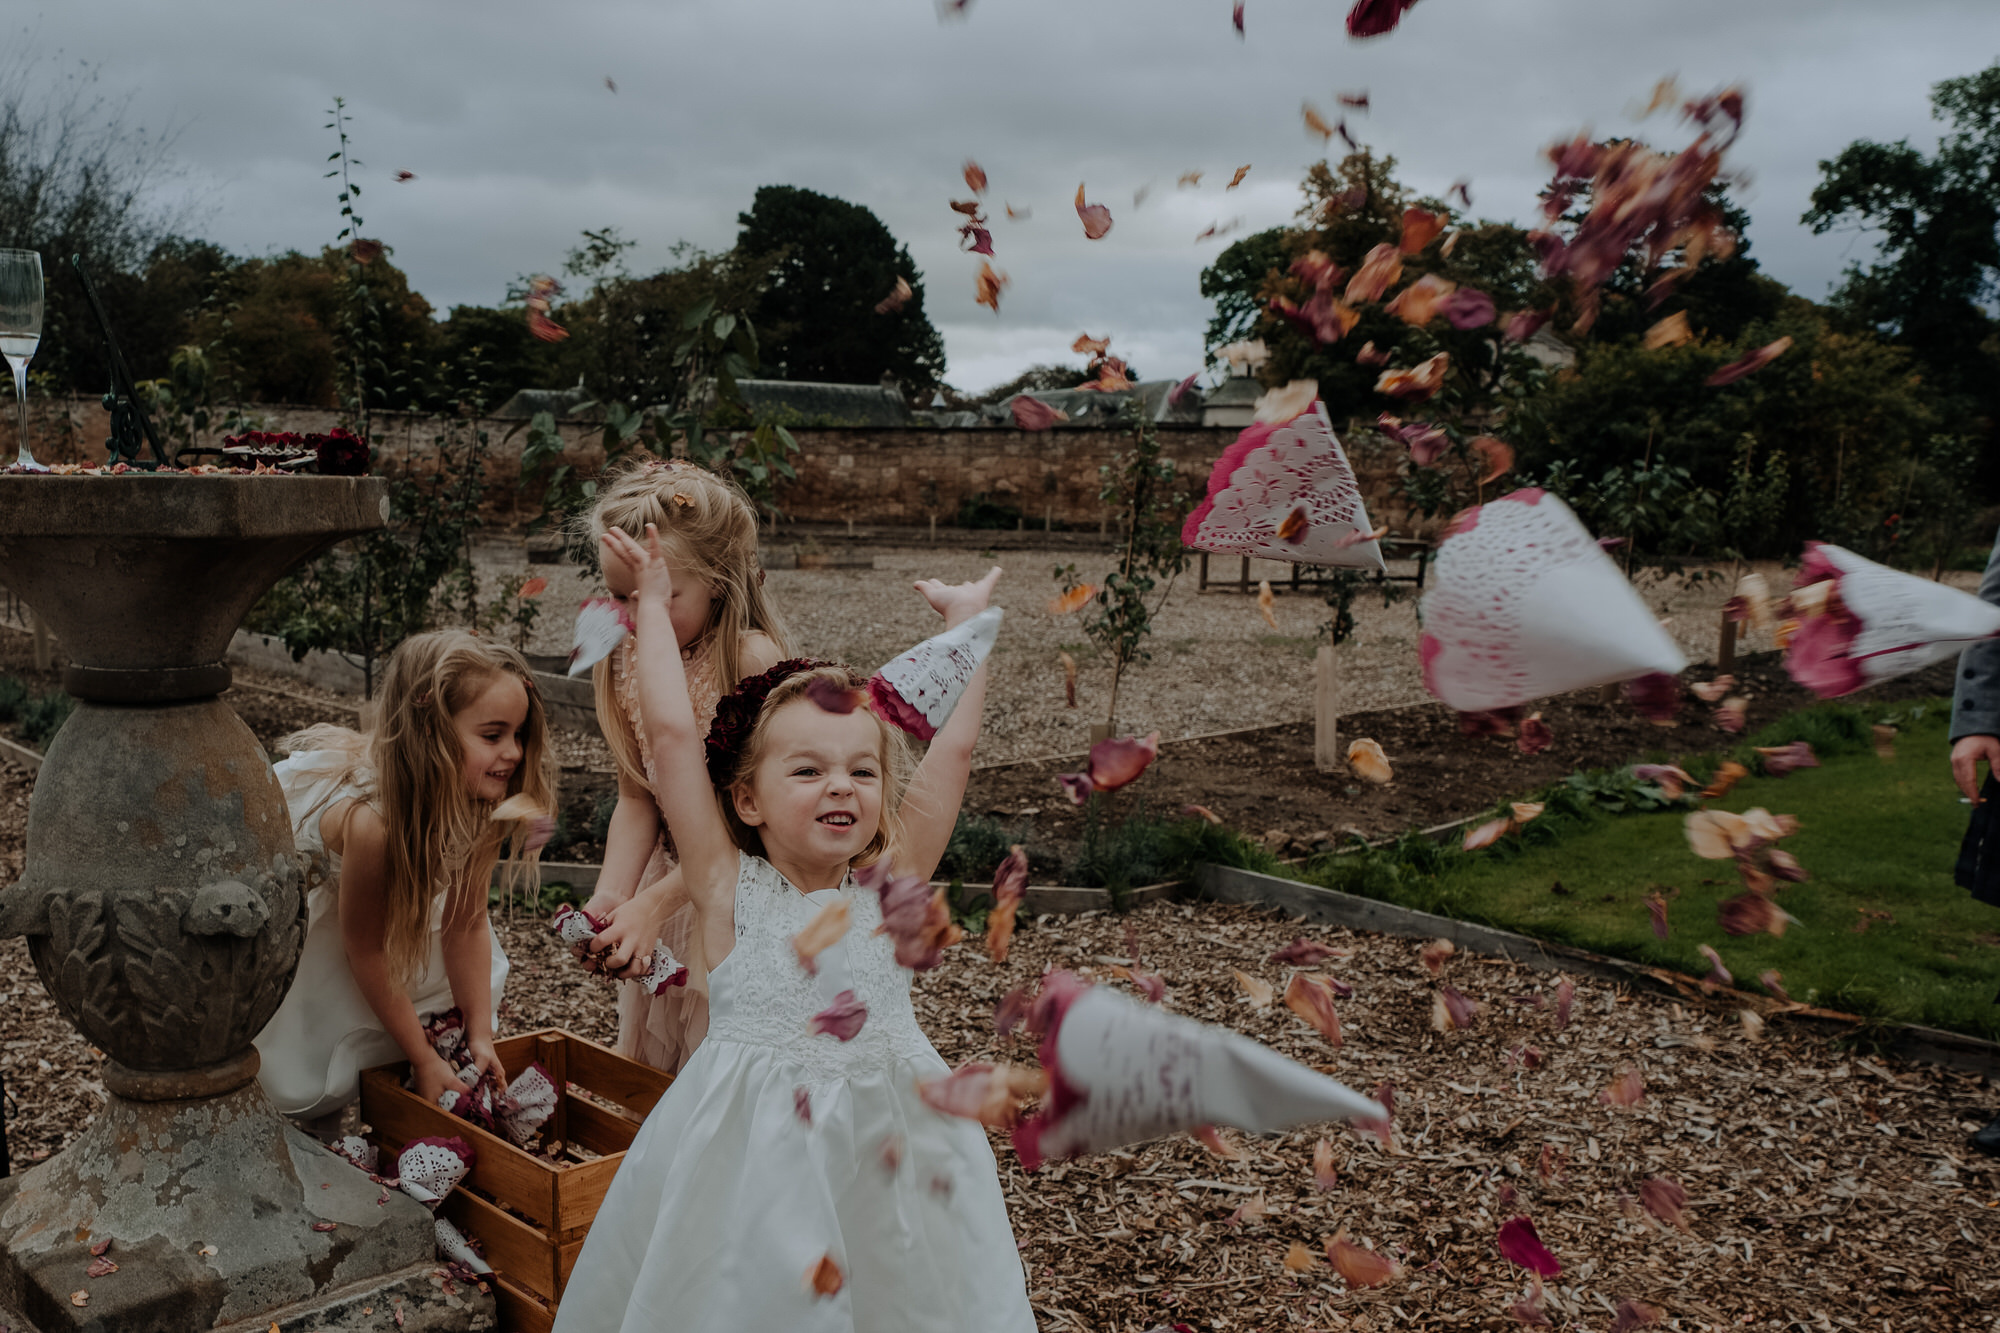 Christine McNally Photograhy1 - Confetti flower girl playful photography